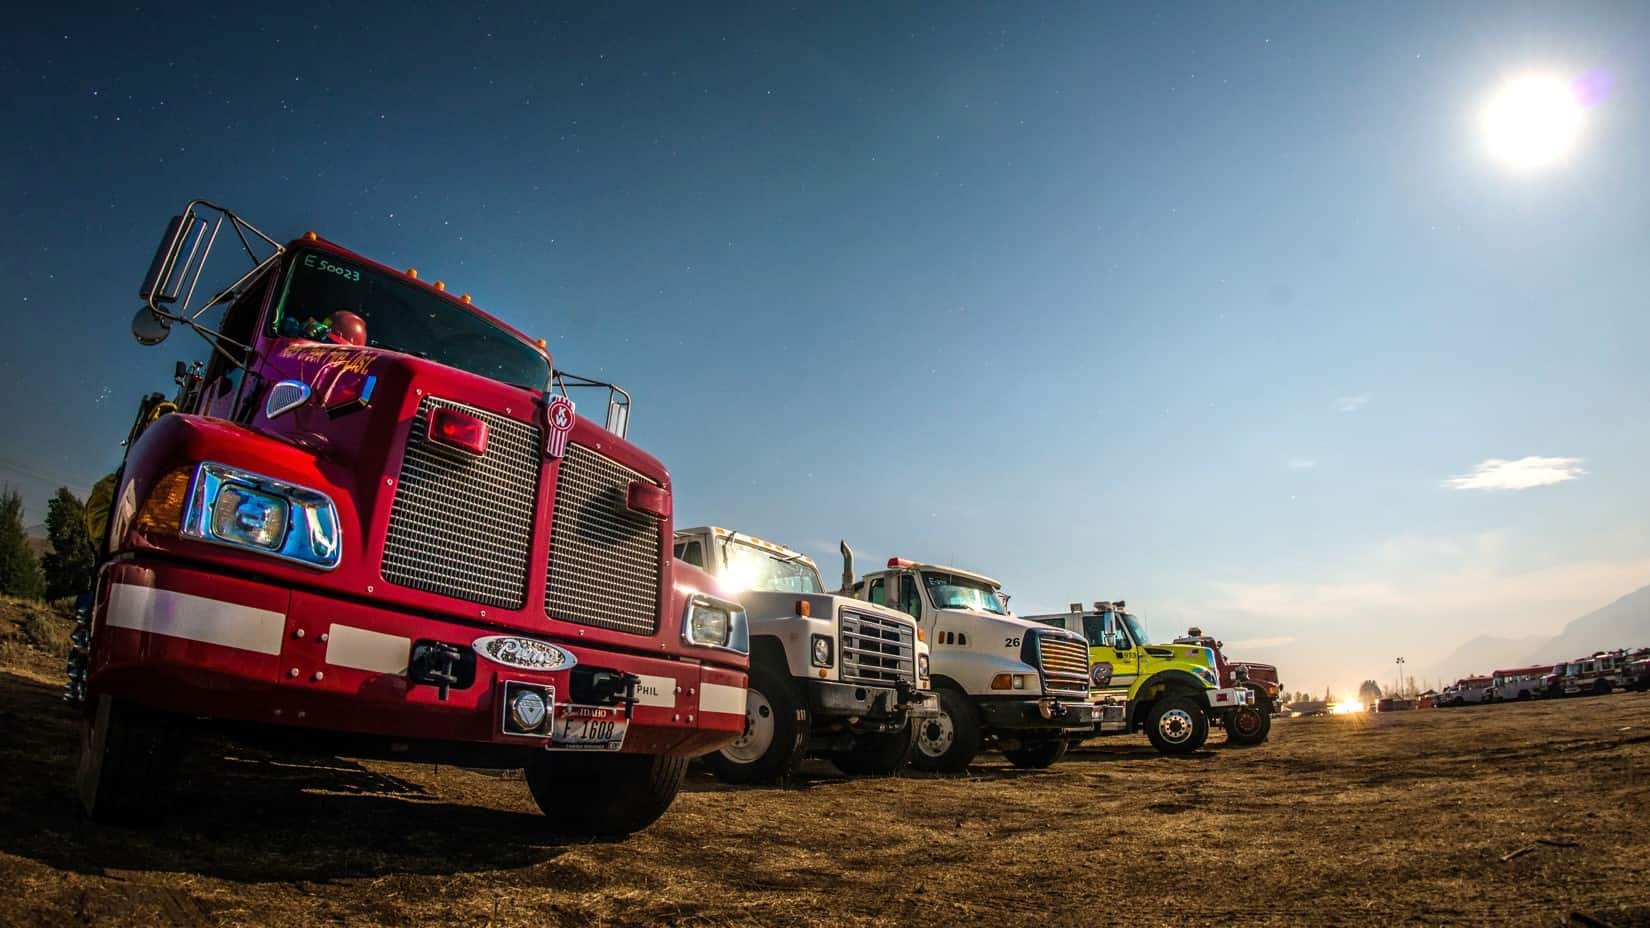 Different agencies' fire trucks